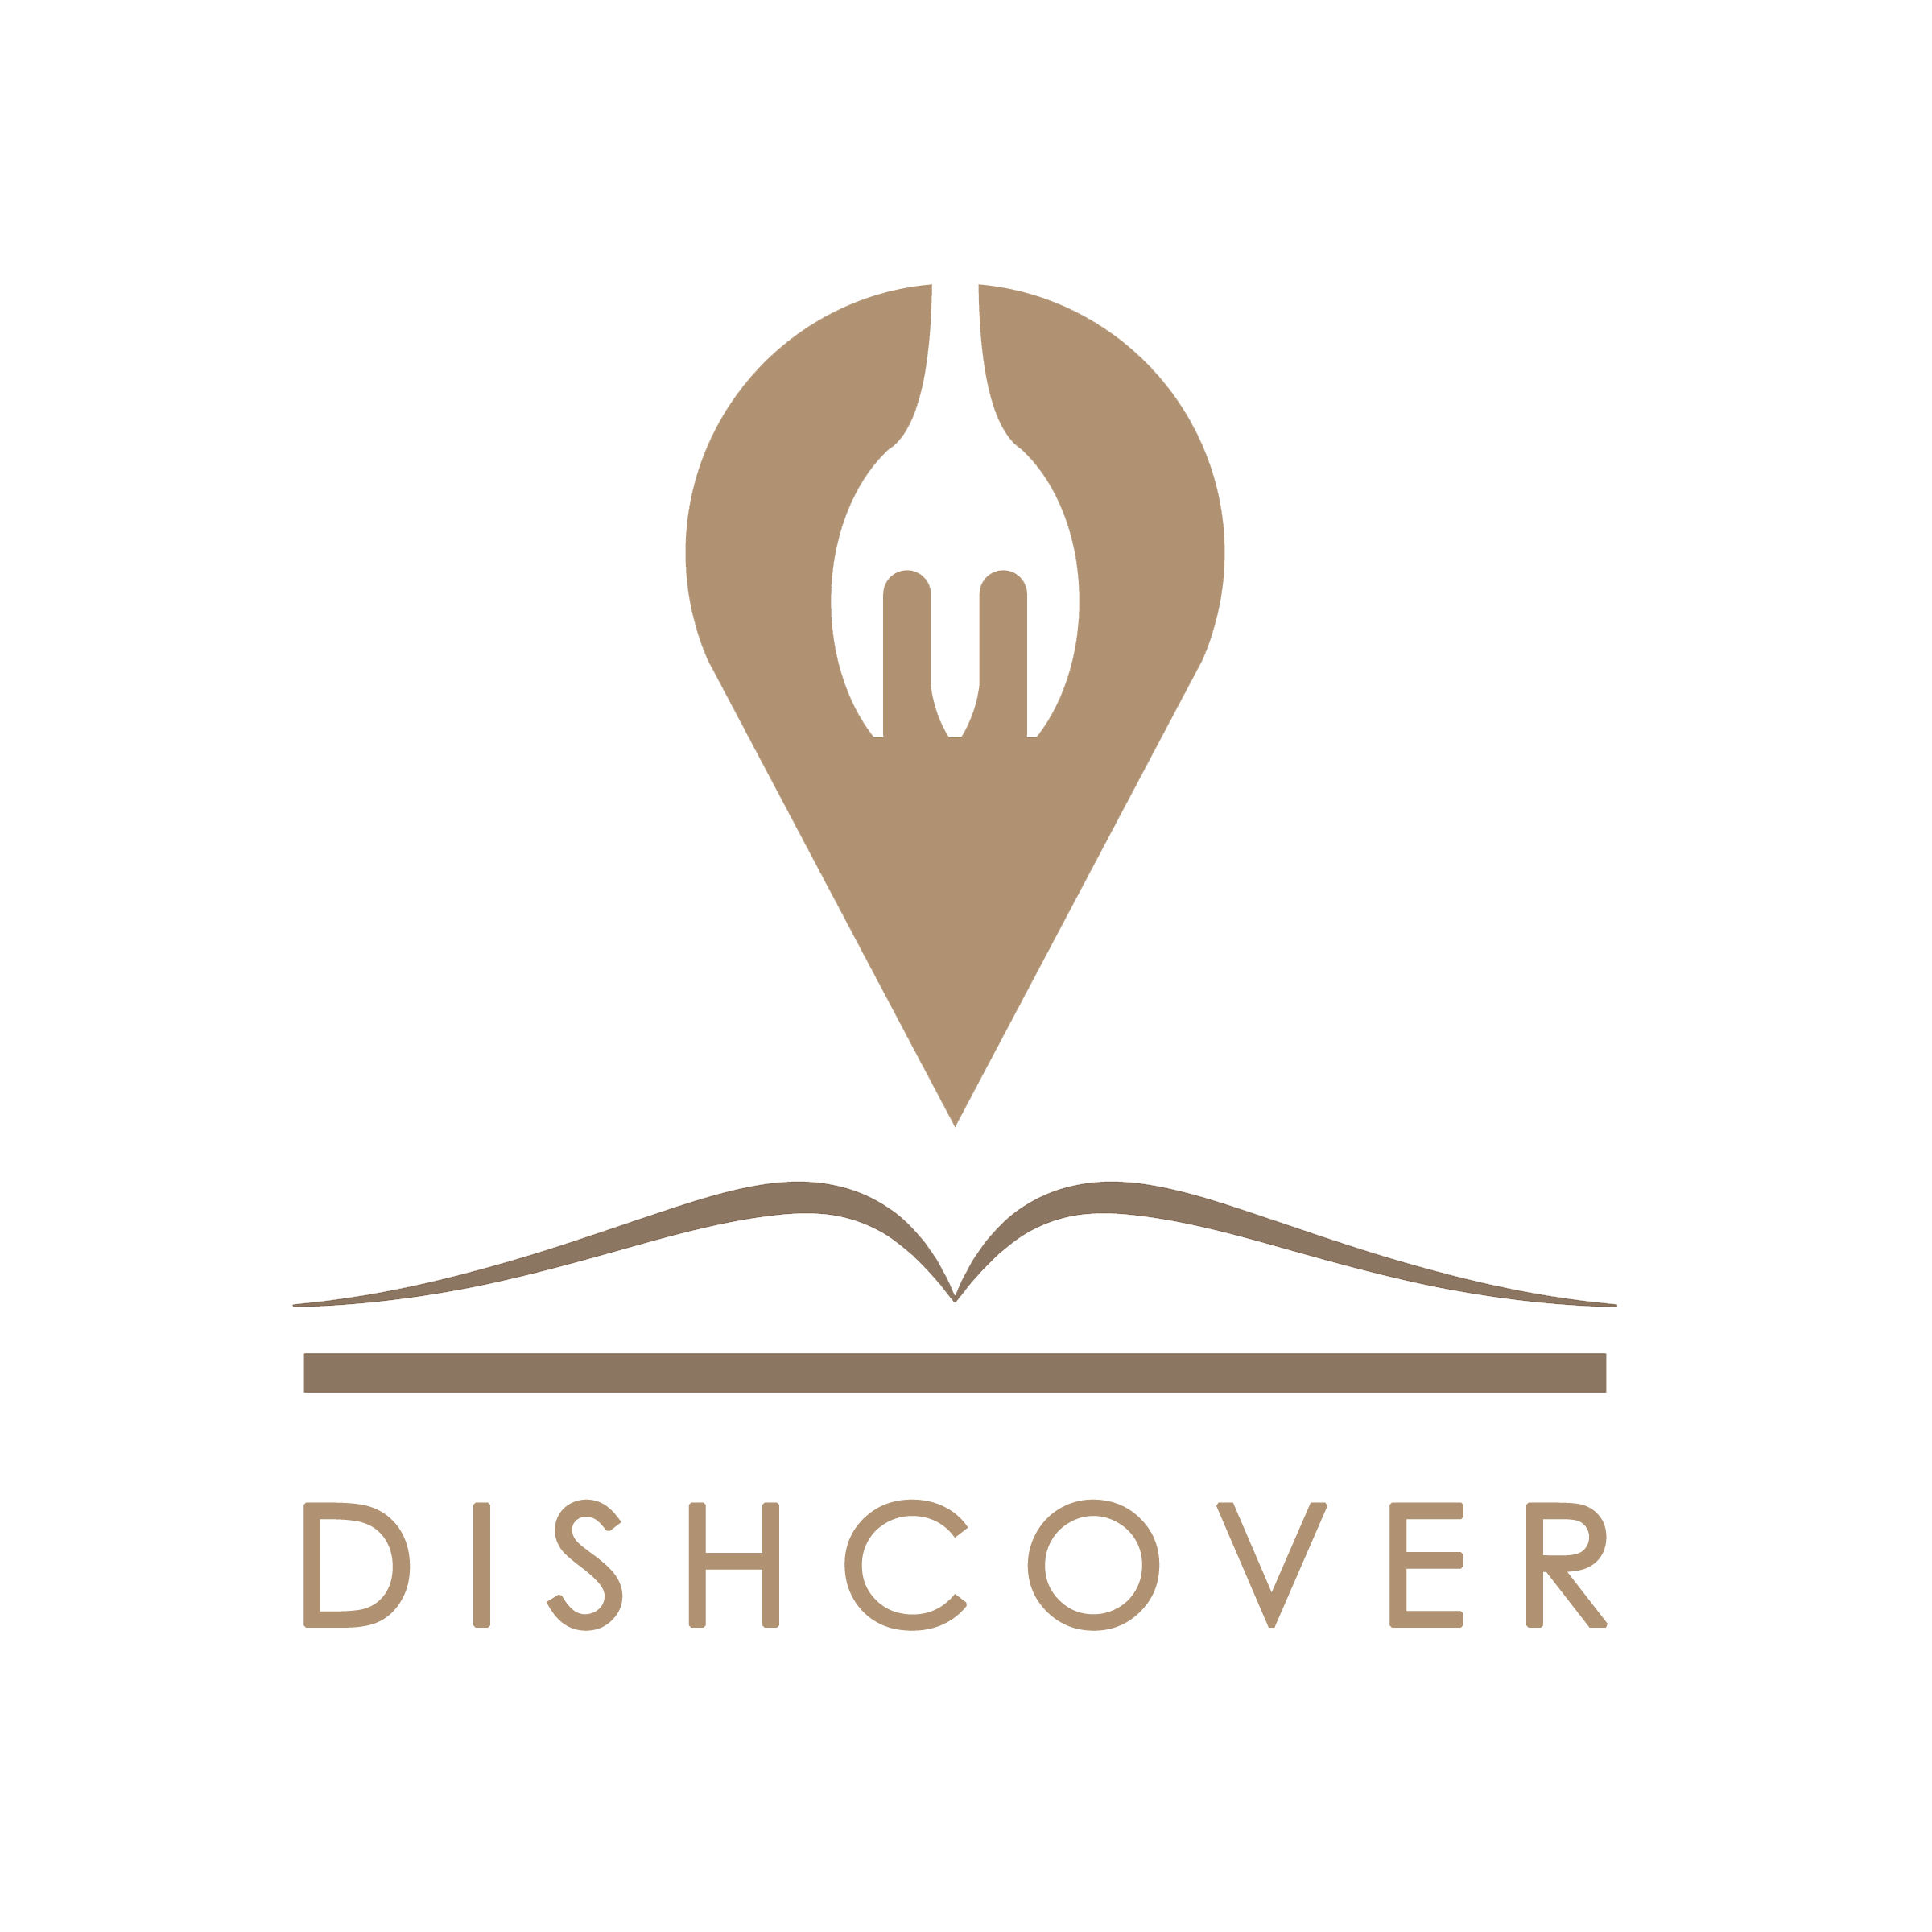 Dishcover